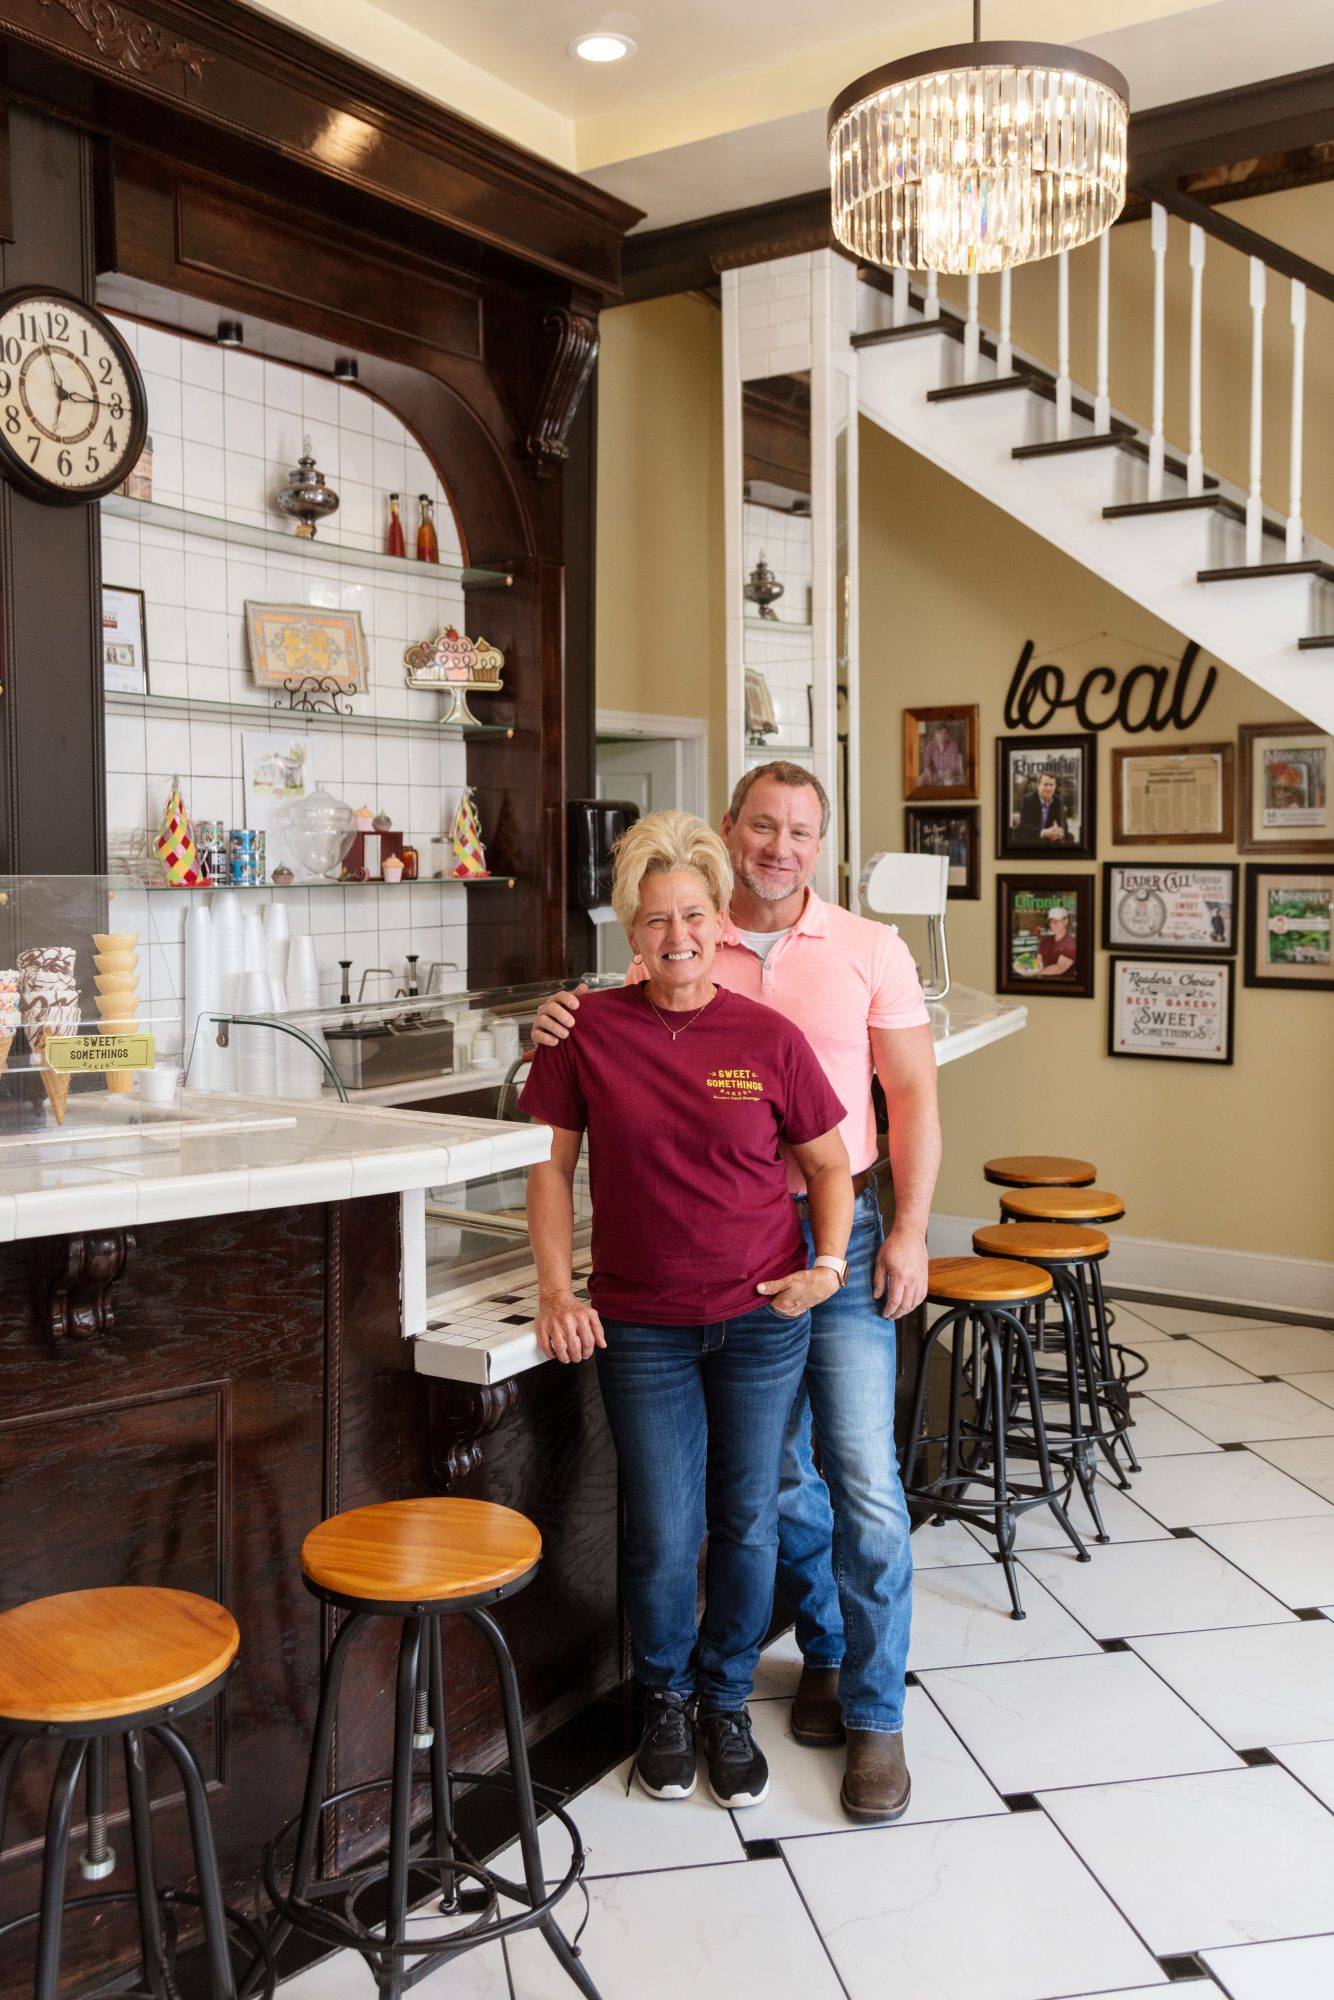 Jamie Suggs & Joseph Watkins of Sweet Somethings Bakery in Laurel, MS